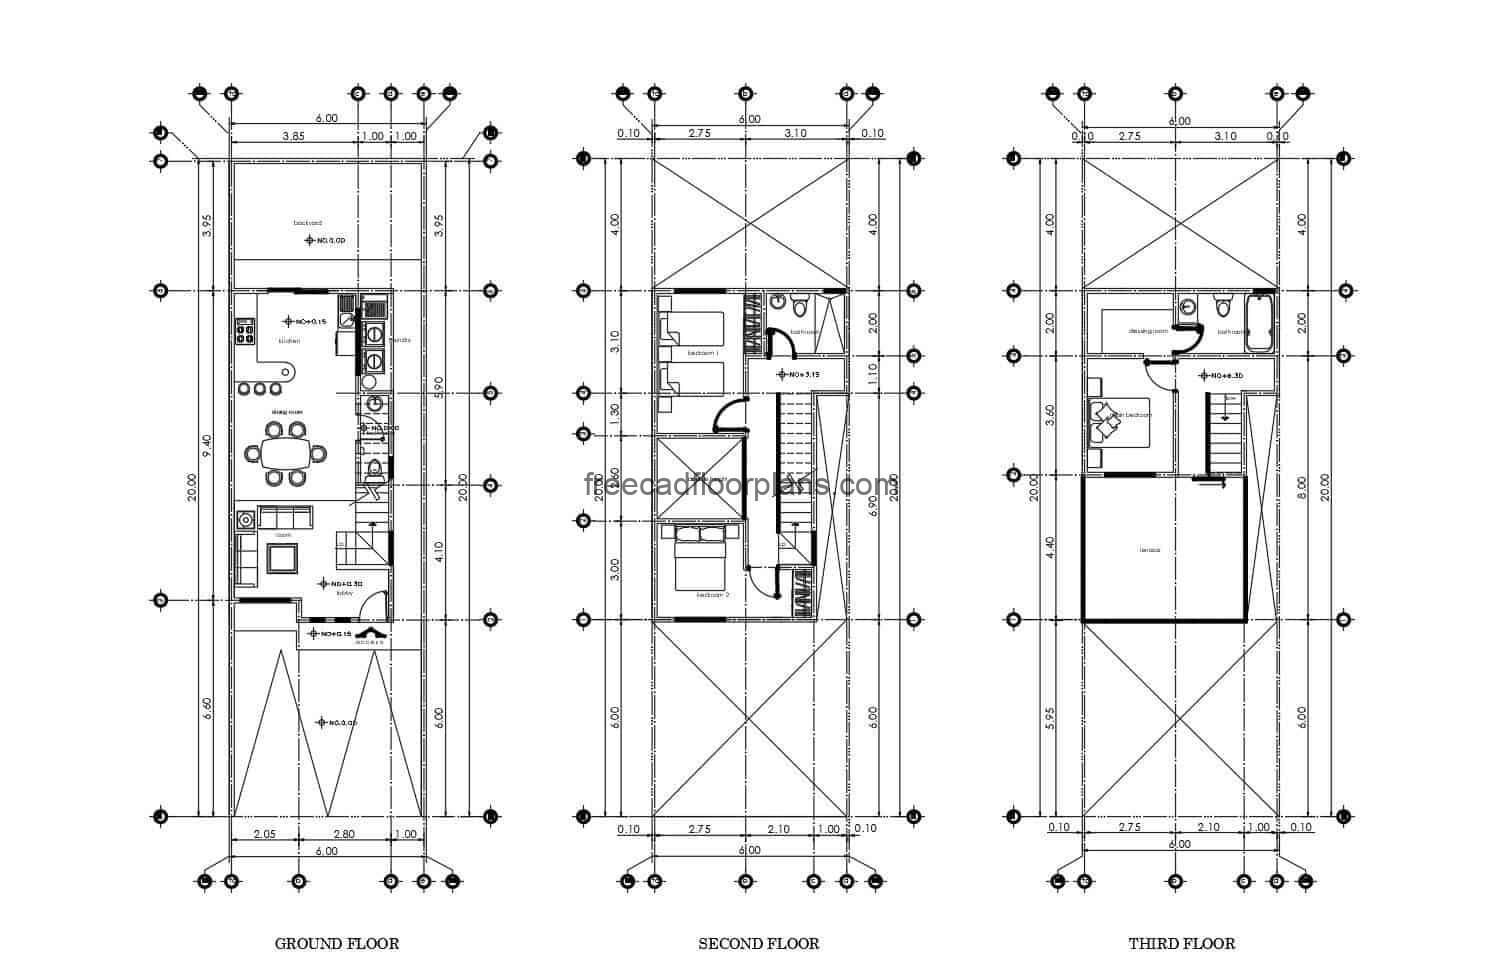 Plans in autocad of small elongated house of multiple levels, with two rooms.